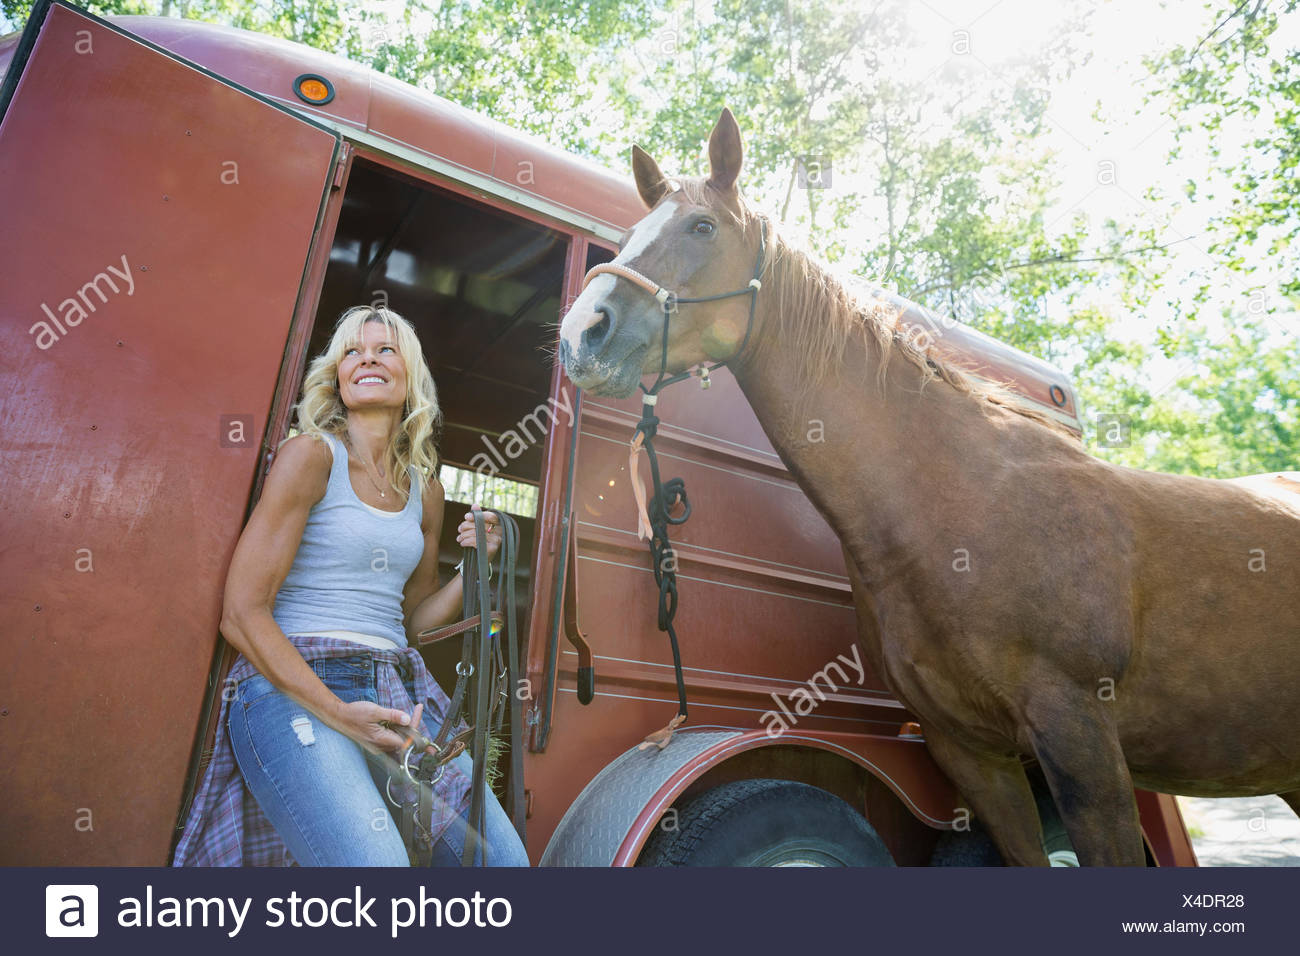 Smiling woman with horse at trailer - Stock Image